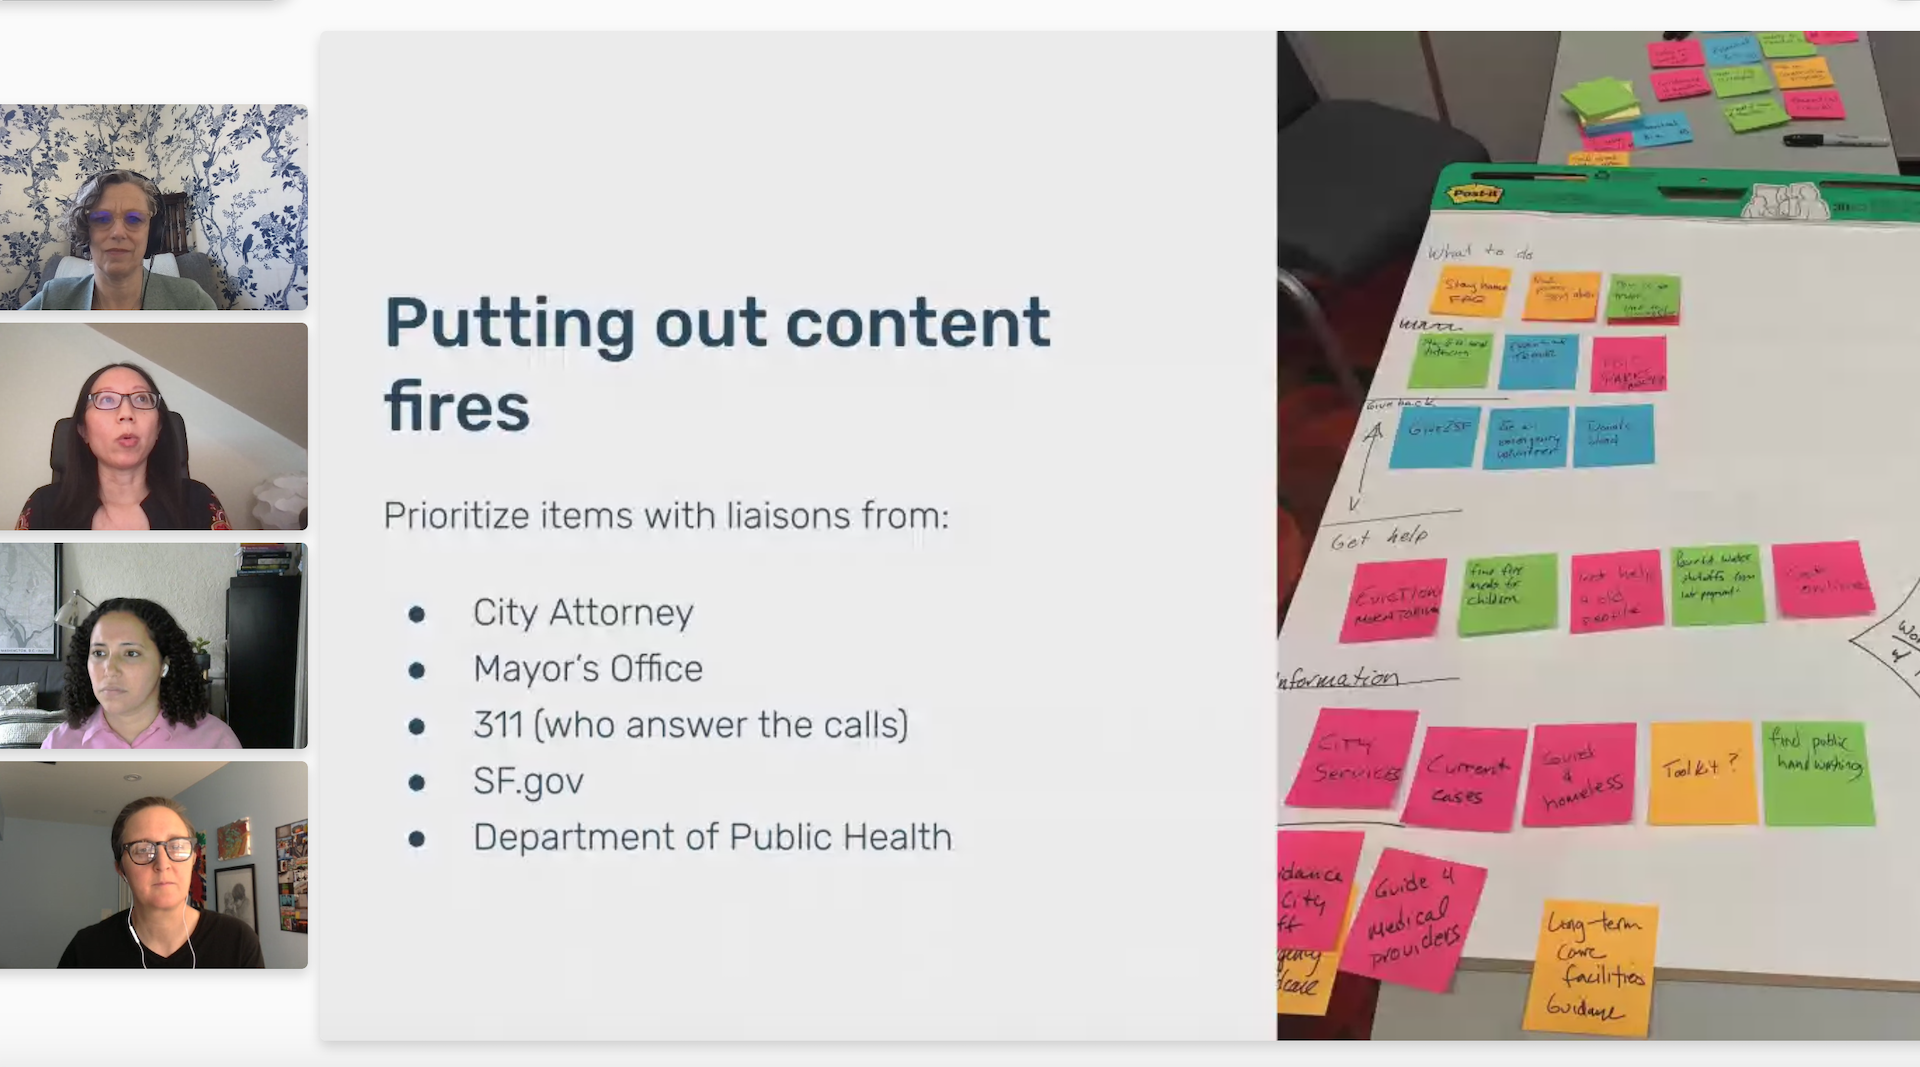 Left: Headshots of four women in a column. Centre text: Putting out content fires. Prioritize items with liaisons from: City attorney, mayor's office, 311, SF gov, Department of public health. Right: Image of colourful sticky notes on whiteboard.